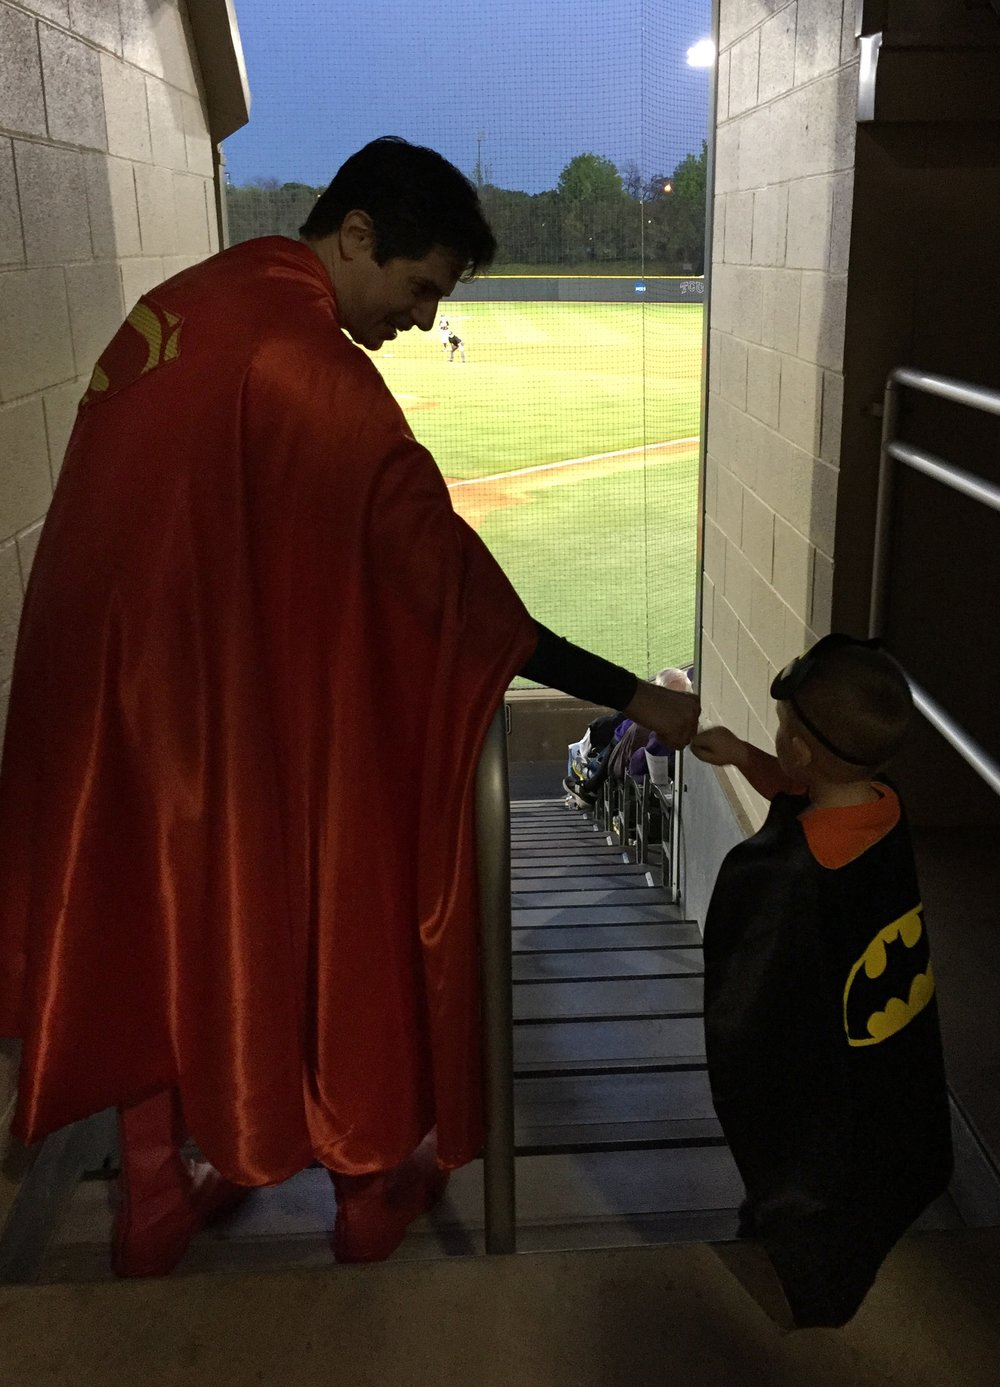 Superman shares a fist bump with the Caped Crusader.